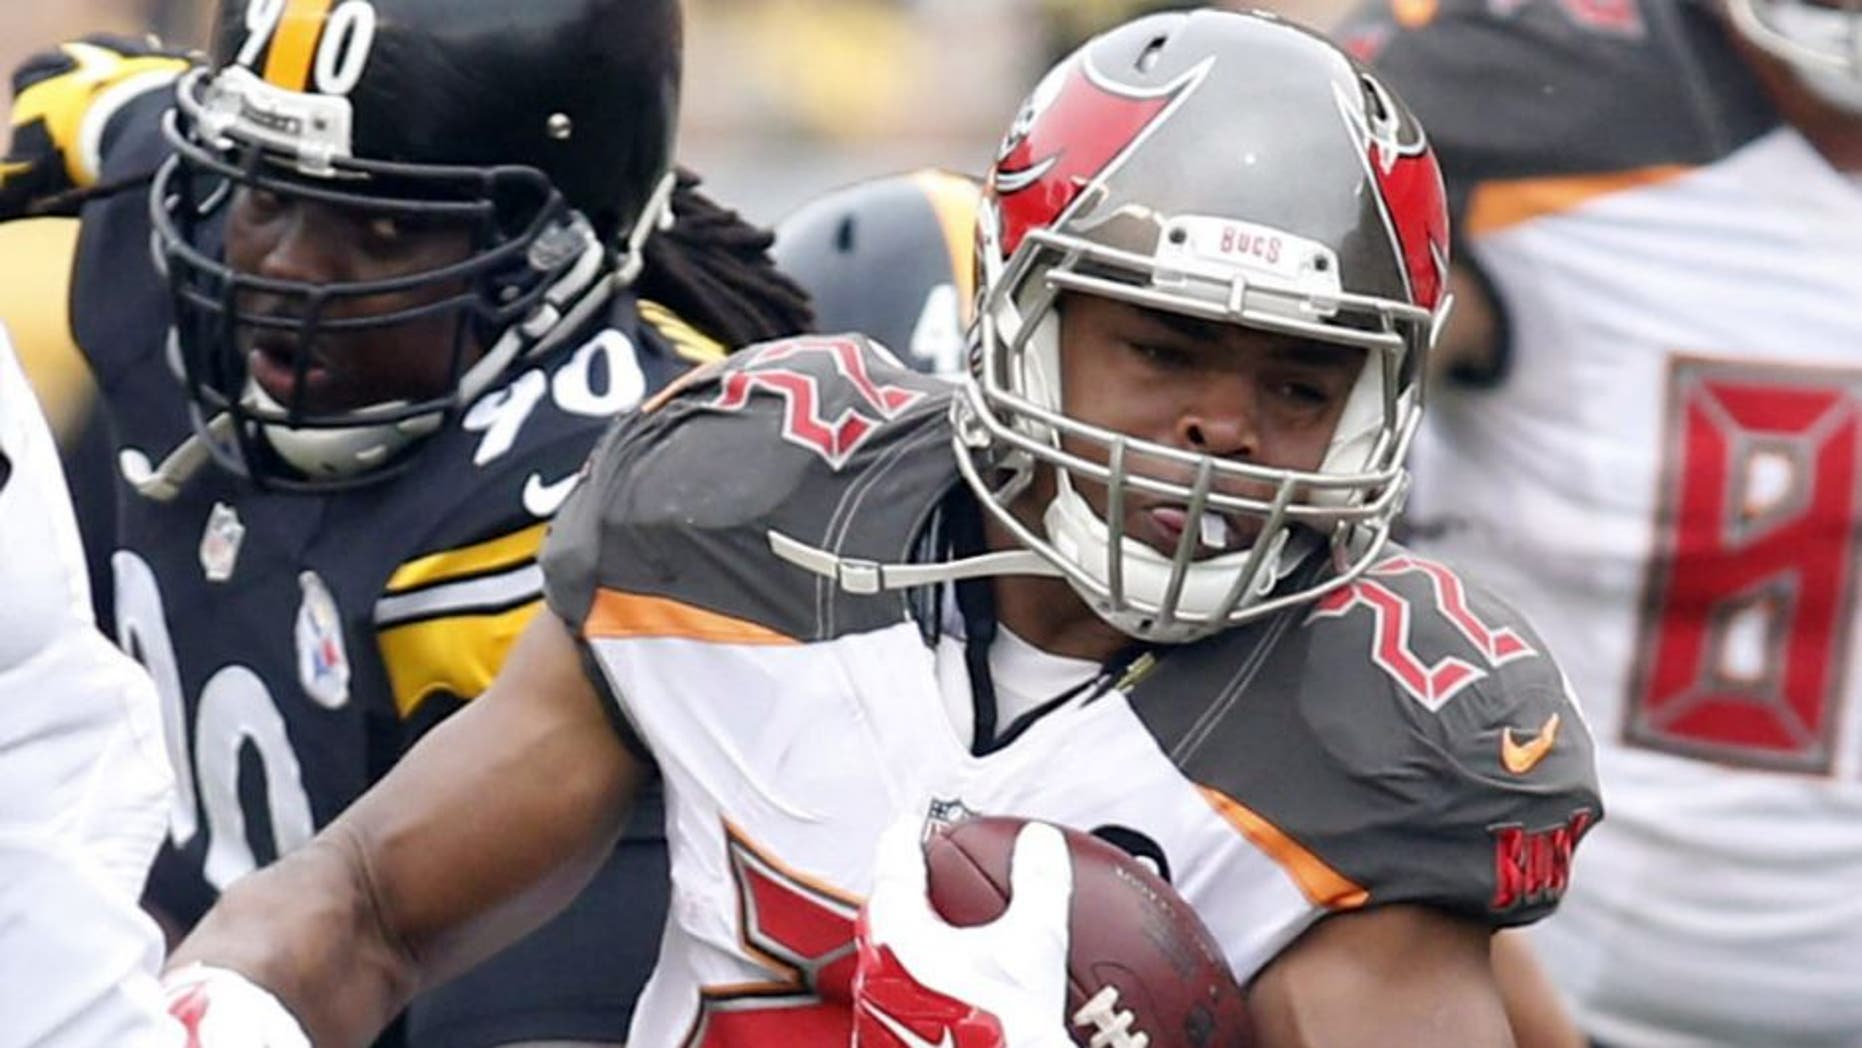 Sep 28, 2014; Pittsburgh, PA, USA; Tampa Bay Buccaneers running back Doug Martin (22) rushes the ball against the Pittsburgh Steelers during the first quarter at Heinz Field. Mandatory Credit: Charles LeClaire-USA TODAY Sports